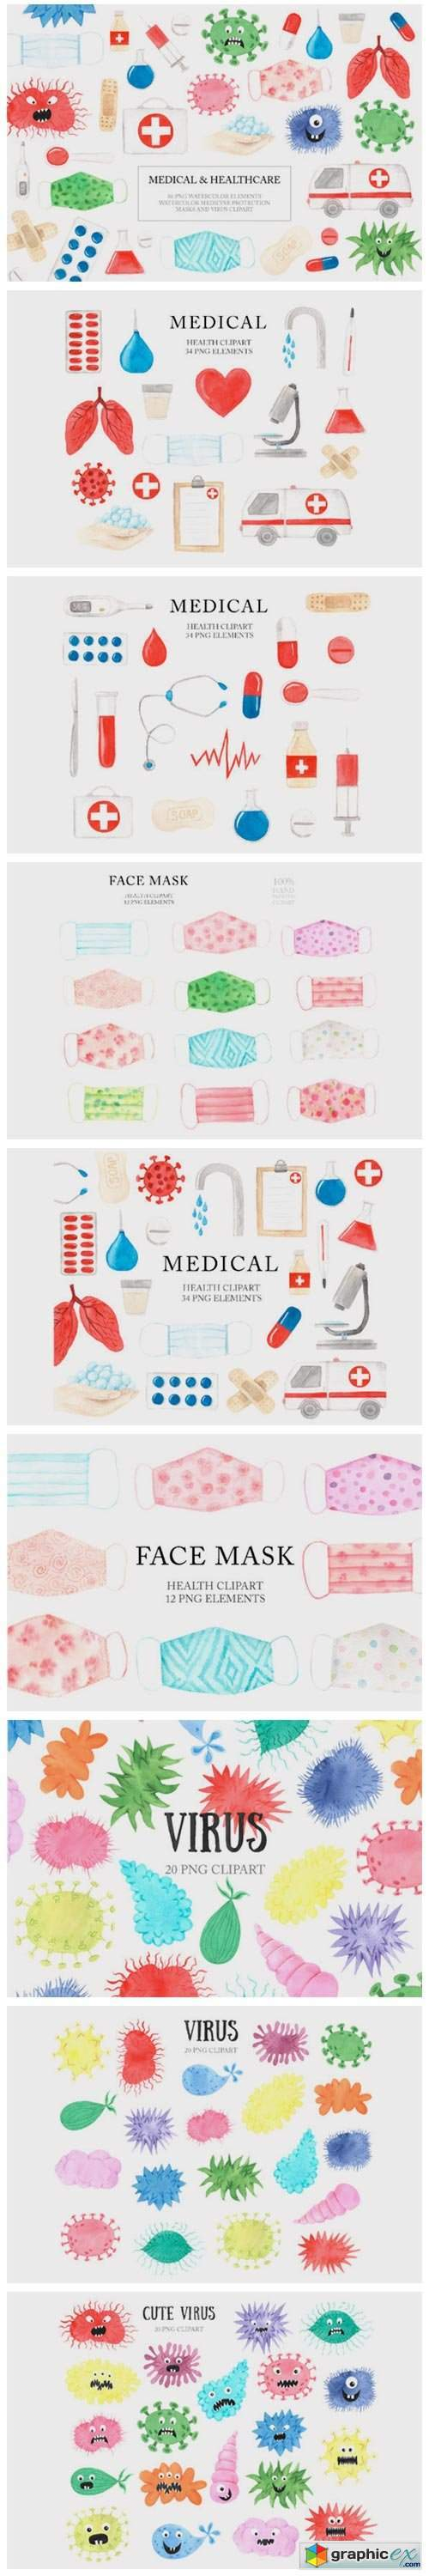 Medical Healthcare Clipart